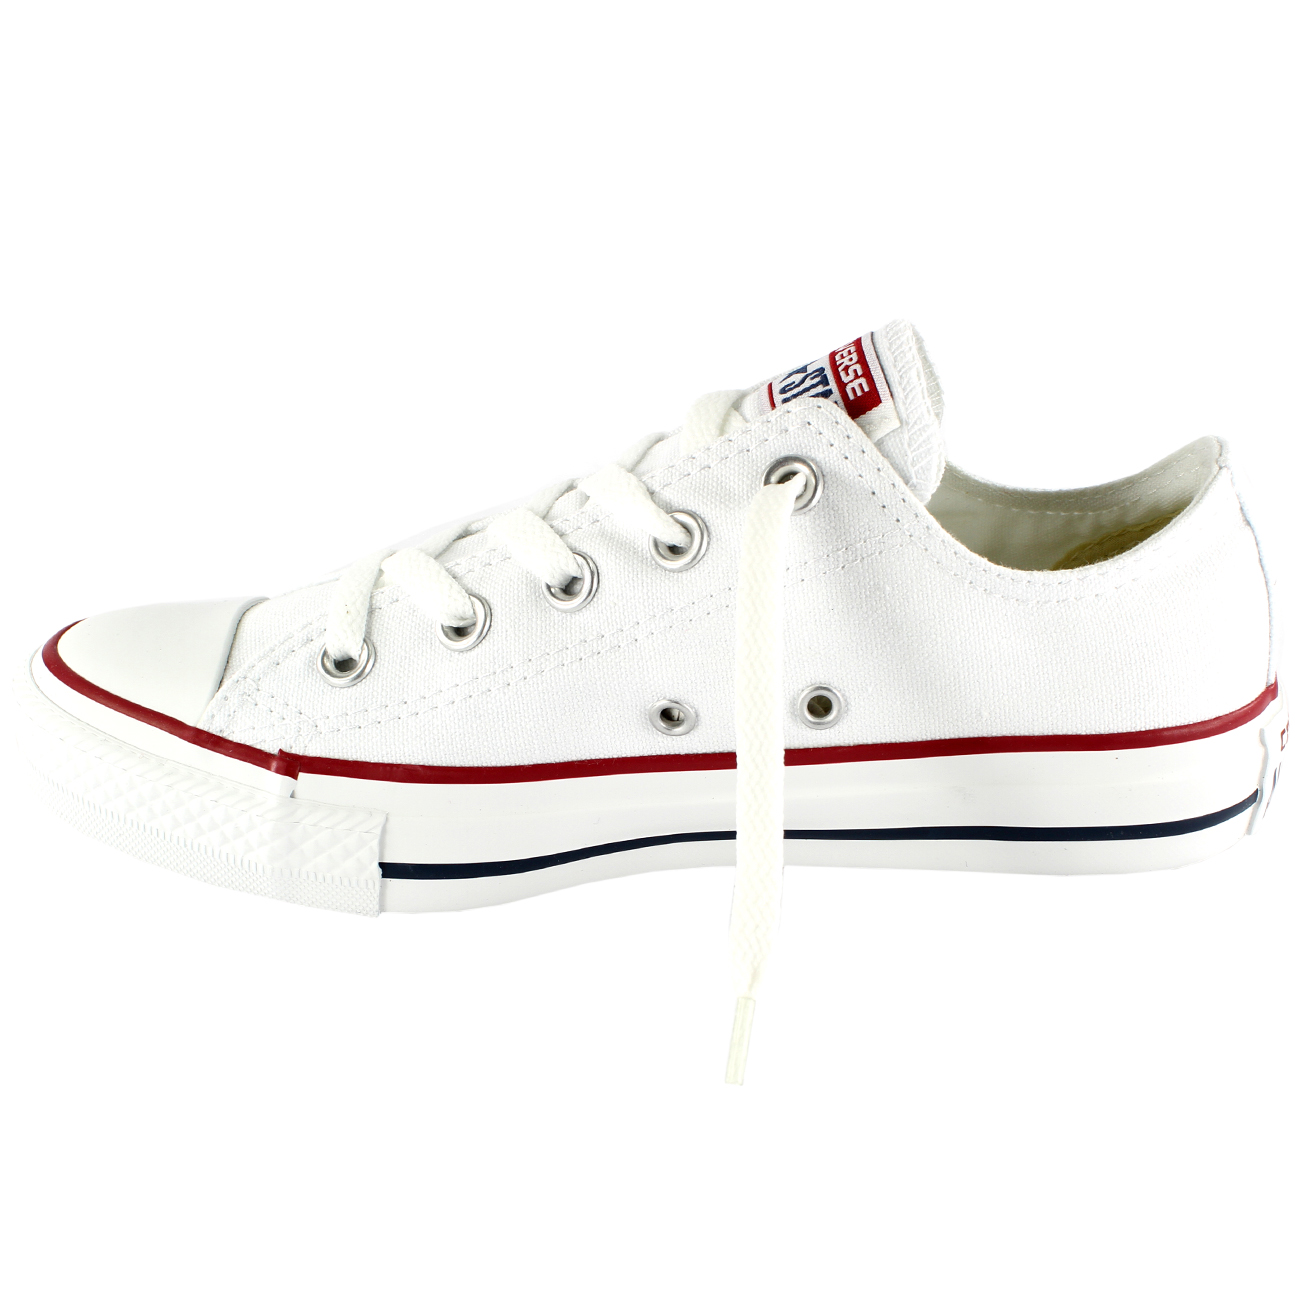 ef89c341a11 Mens Converse All Star Ox Low Top Chuck Taylor Chucks Lace Up ...